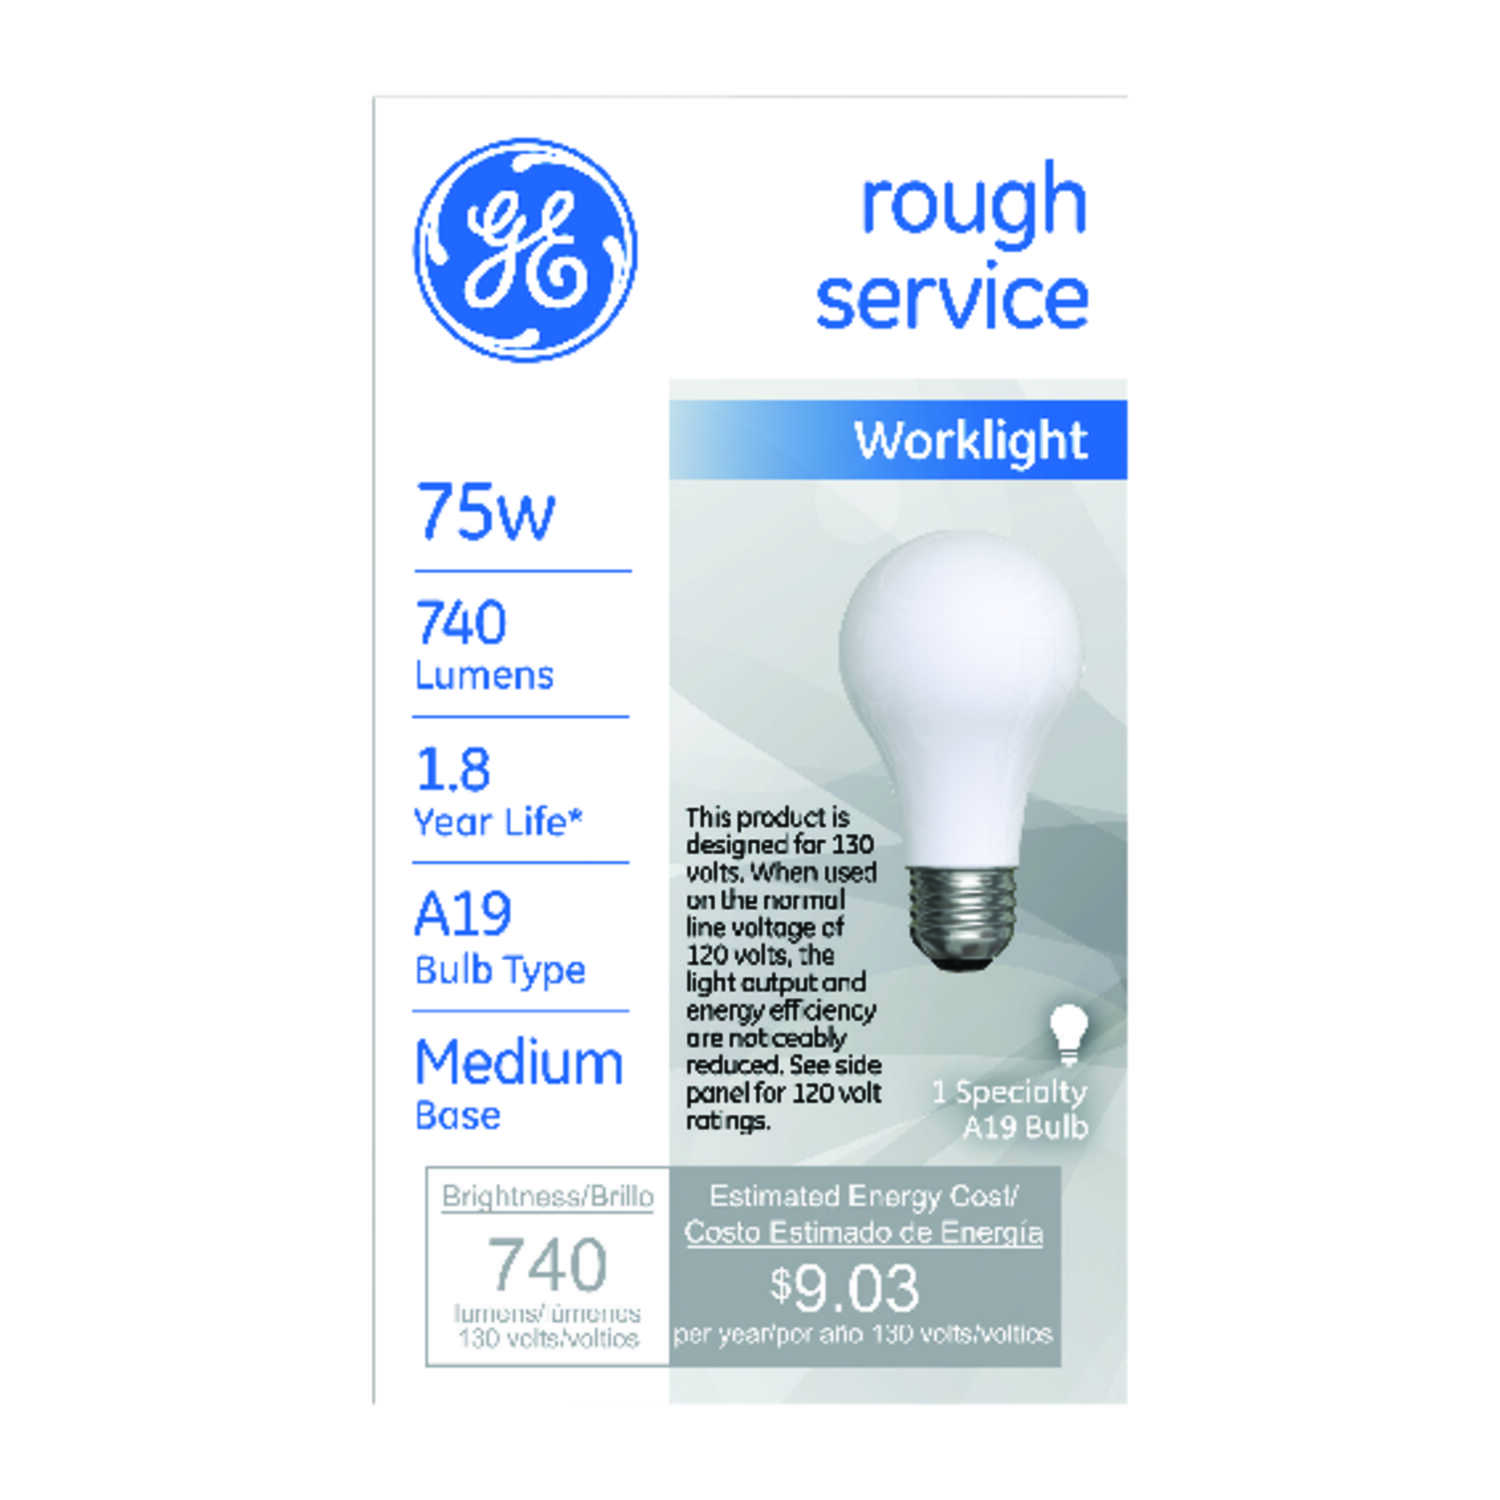 GE Lighting  rough service  75 watts A19  Incandescent Light Bulb  740 lumens Soft White  Specialty